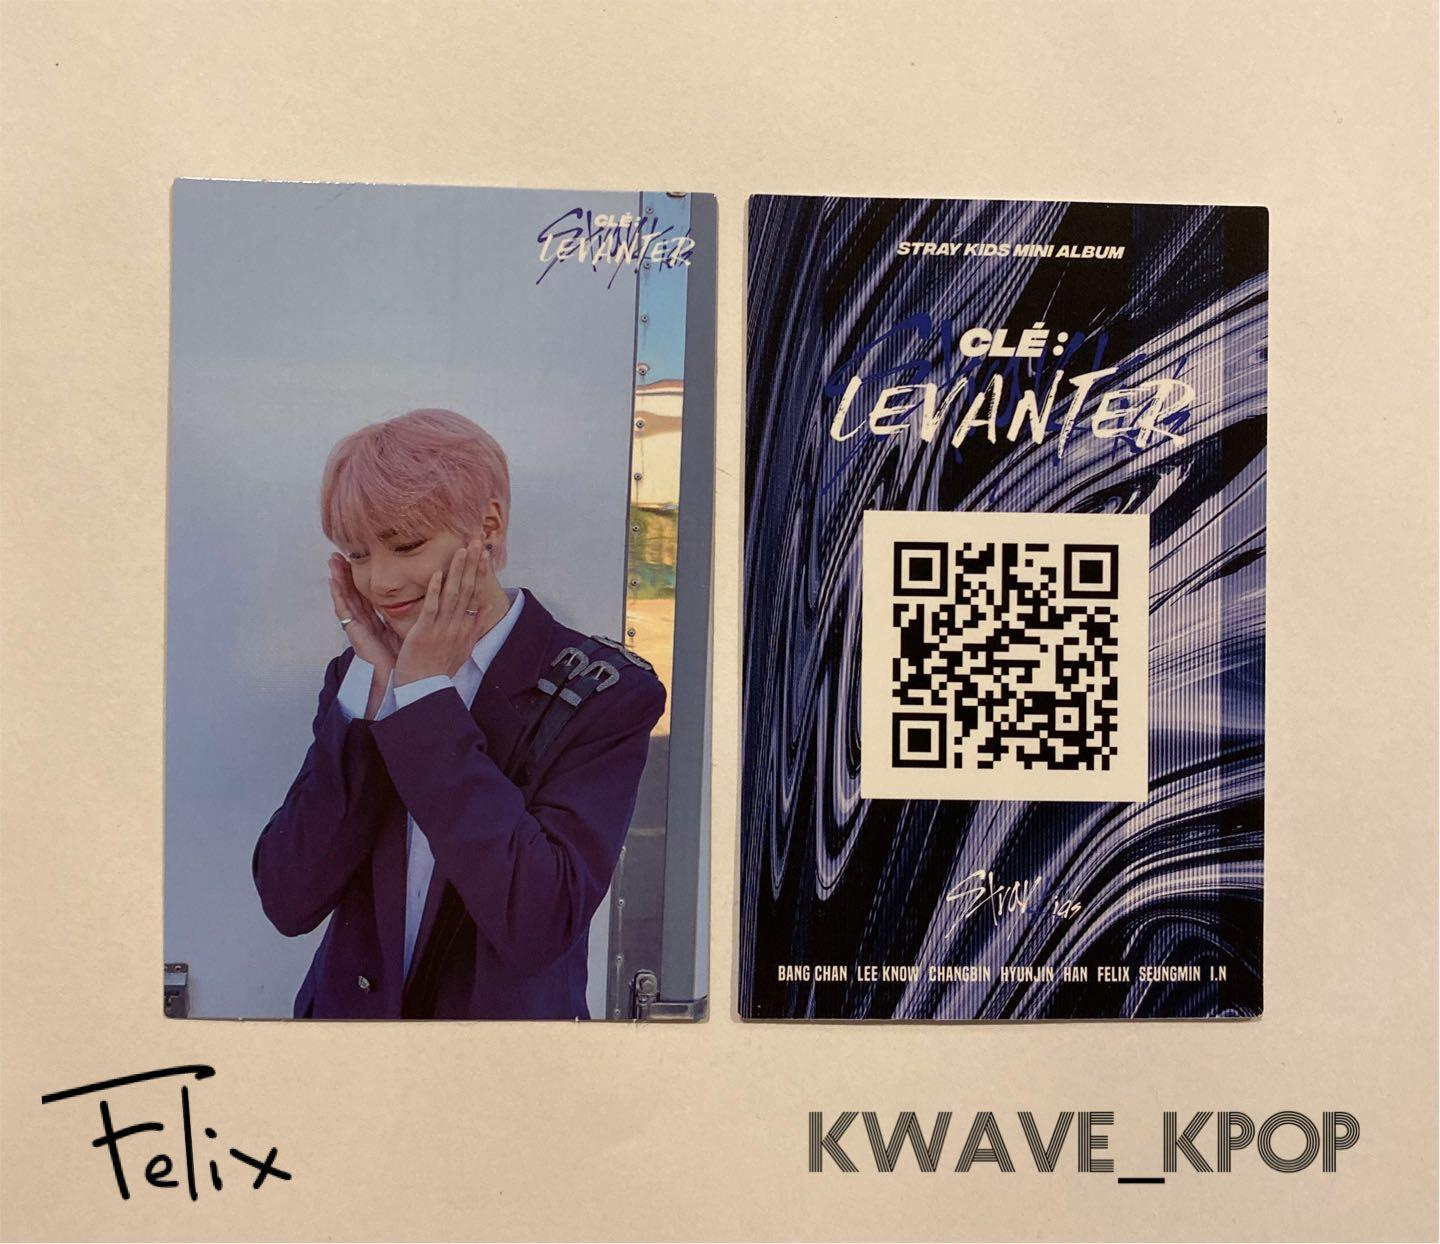 STRAY KIDS CLE : LEVANTER - OFFICIAL PHOTO CARD /LIMITED EDITION LENTICULAR CARD